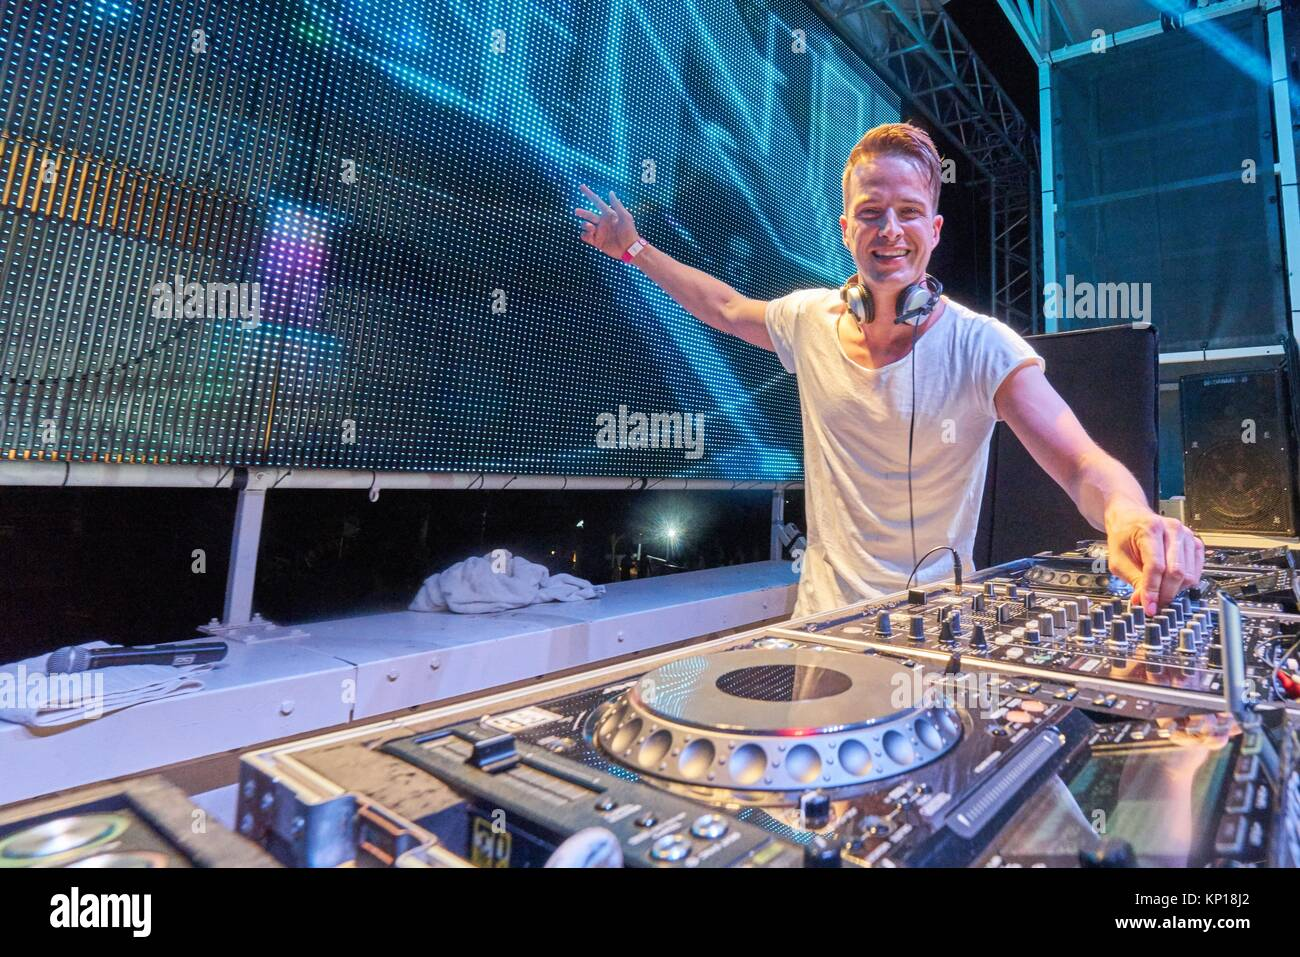 DJ Dannic at music festival Starbeach on 14. August 2017 in Hersonissos, Crete, Greece - Stock Image